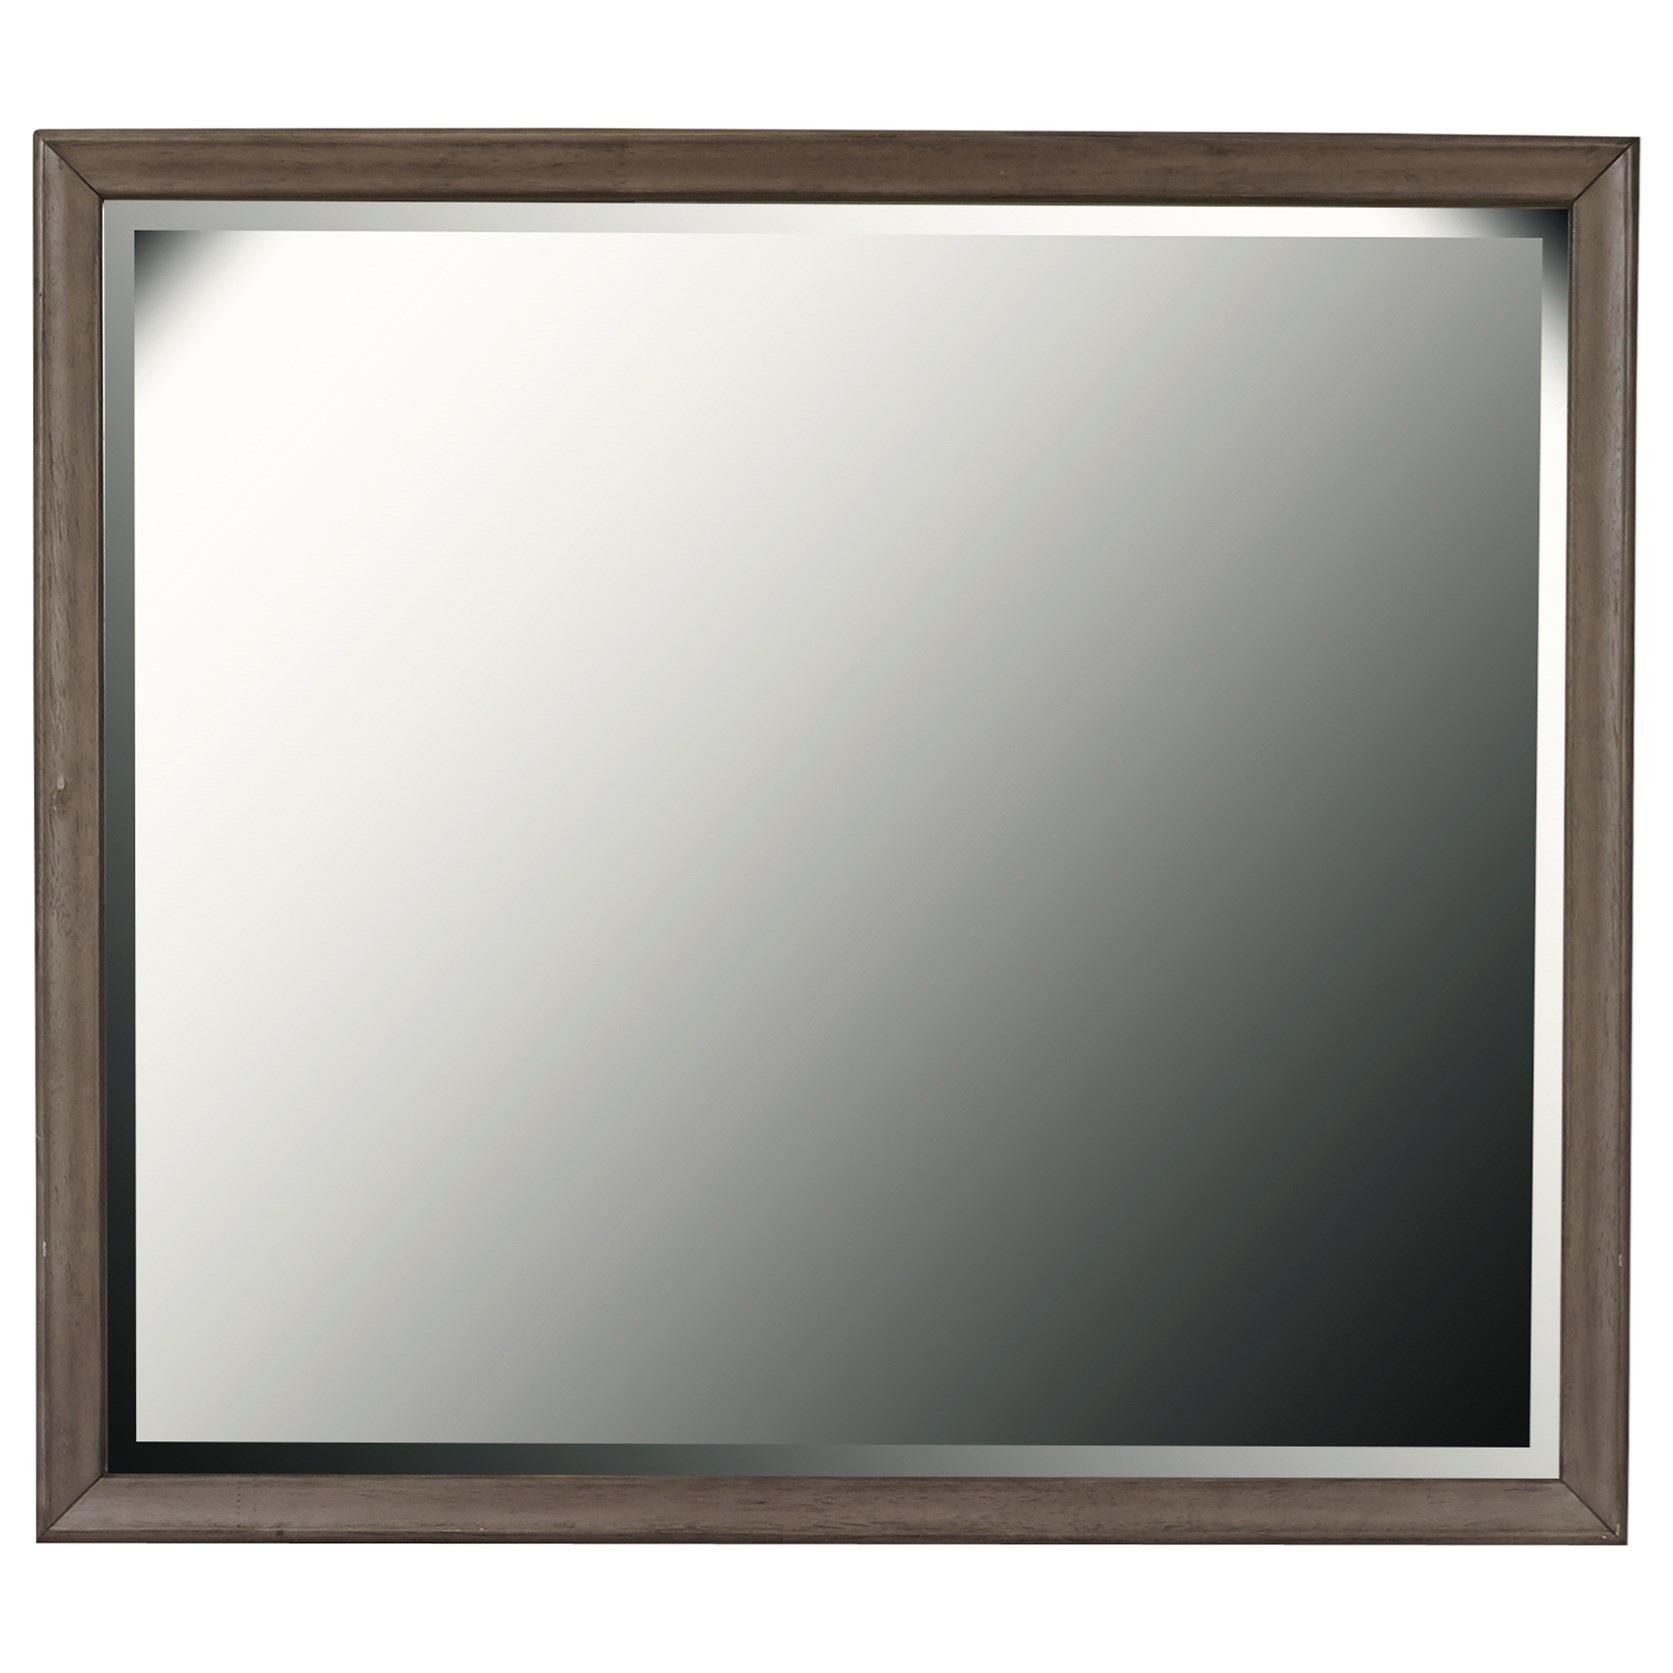 Hanover Square Mirror by Samuel Lawrence at Rooms for Less